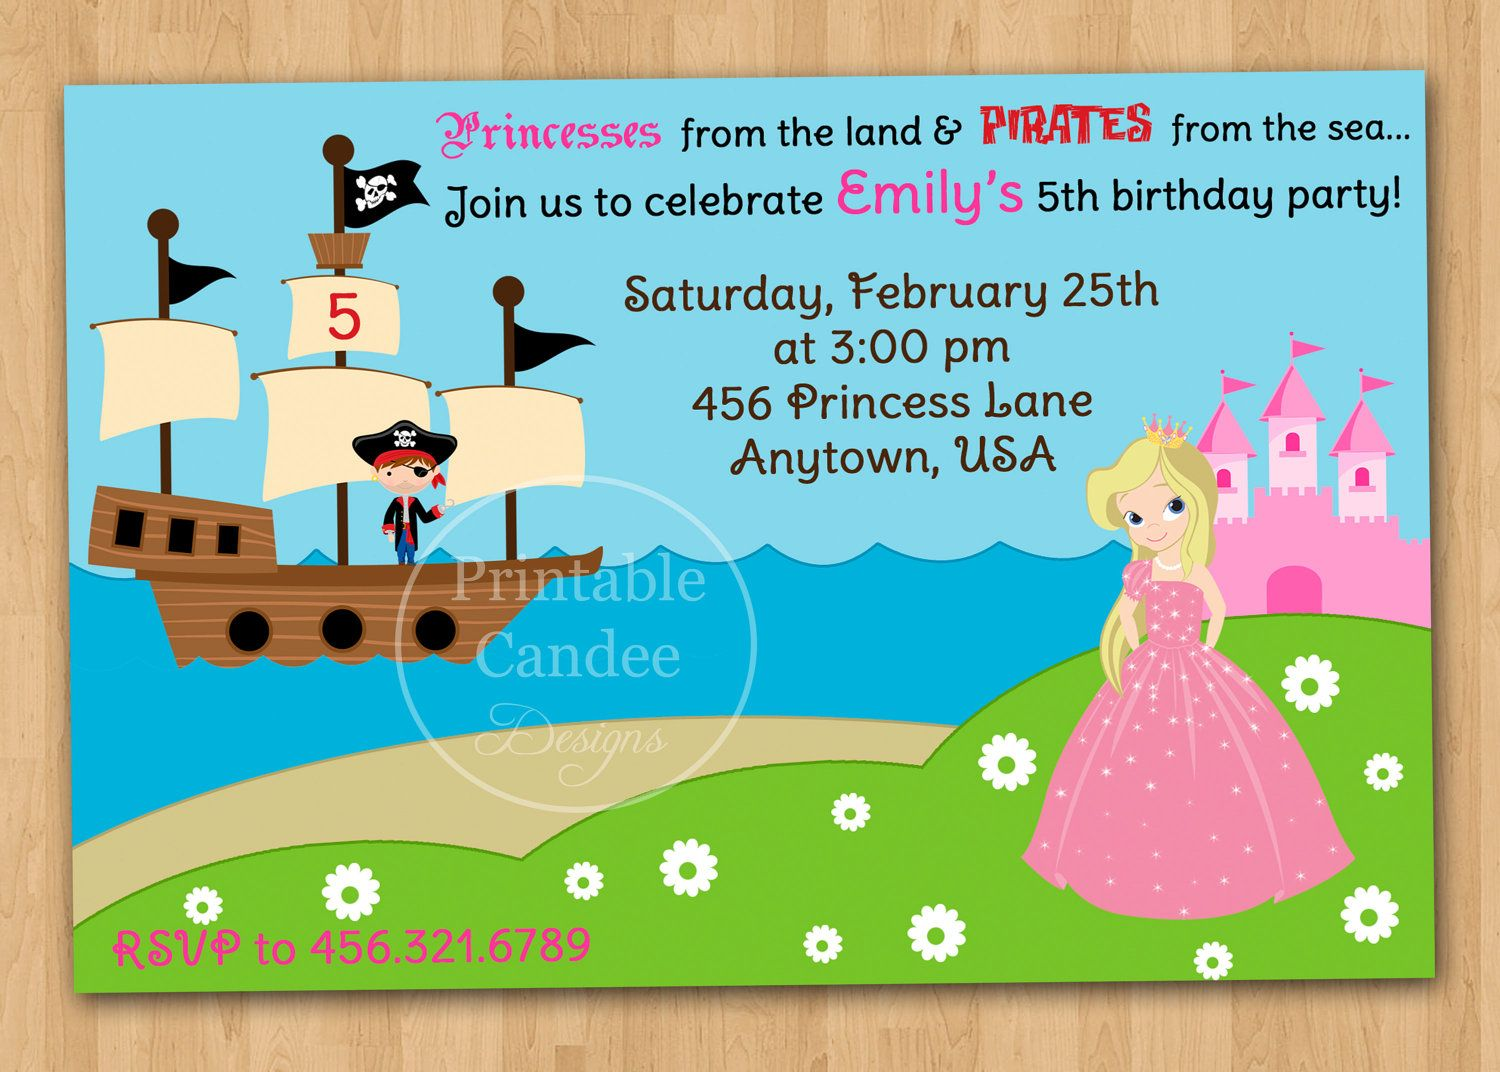 Pirate And Princess Party Invitations Template Free | preschool ...